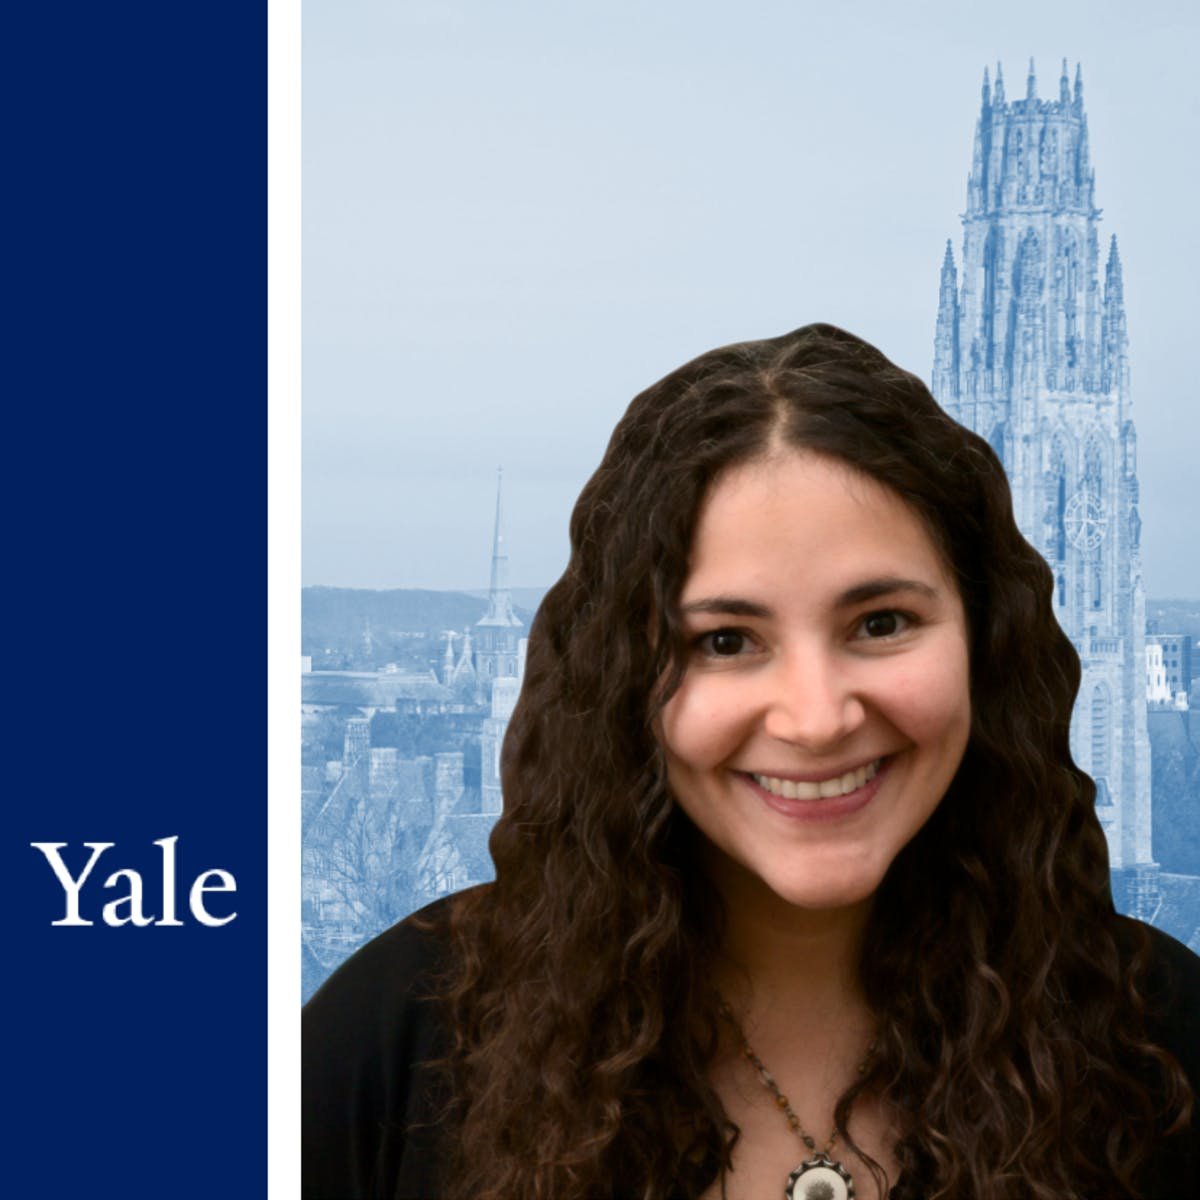 Dr. Laurie Santos, Psychology professor at Yale, podcast host, and MOOC instructor.